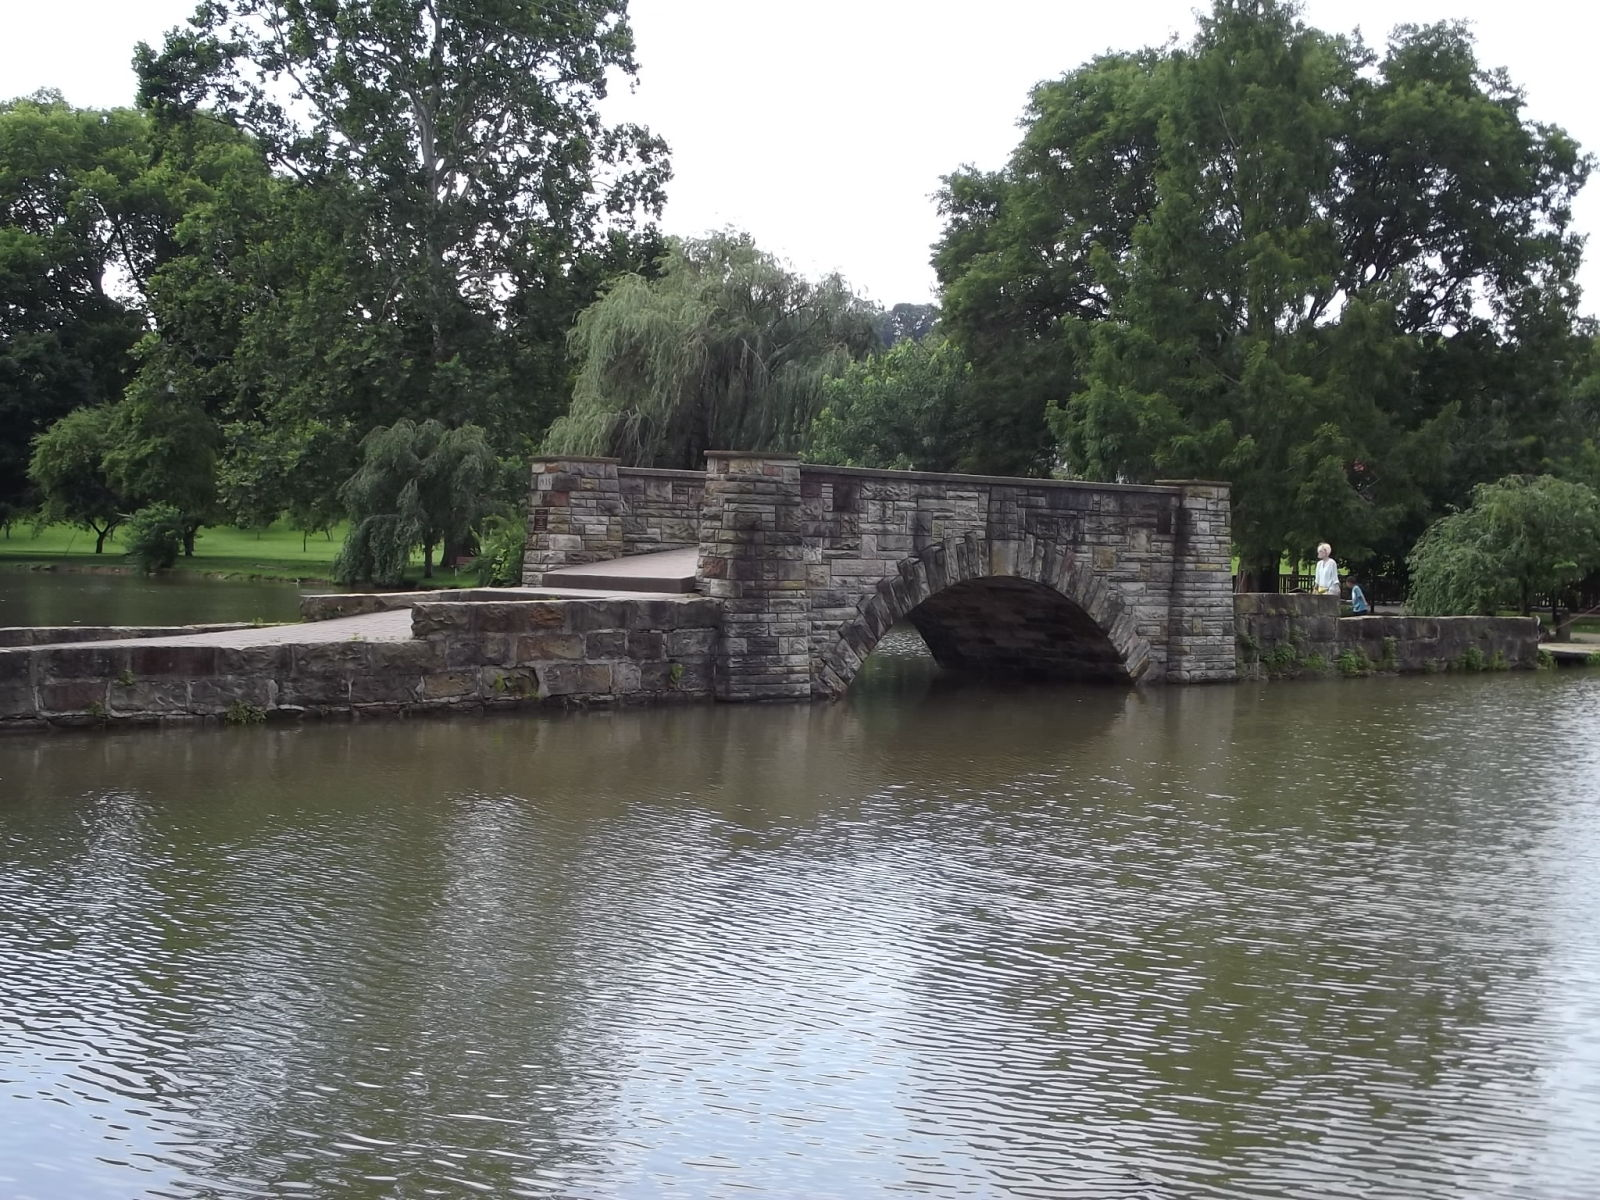 stone bridge over water with surrounding trees